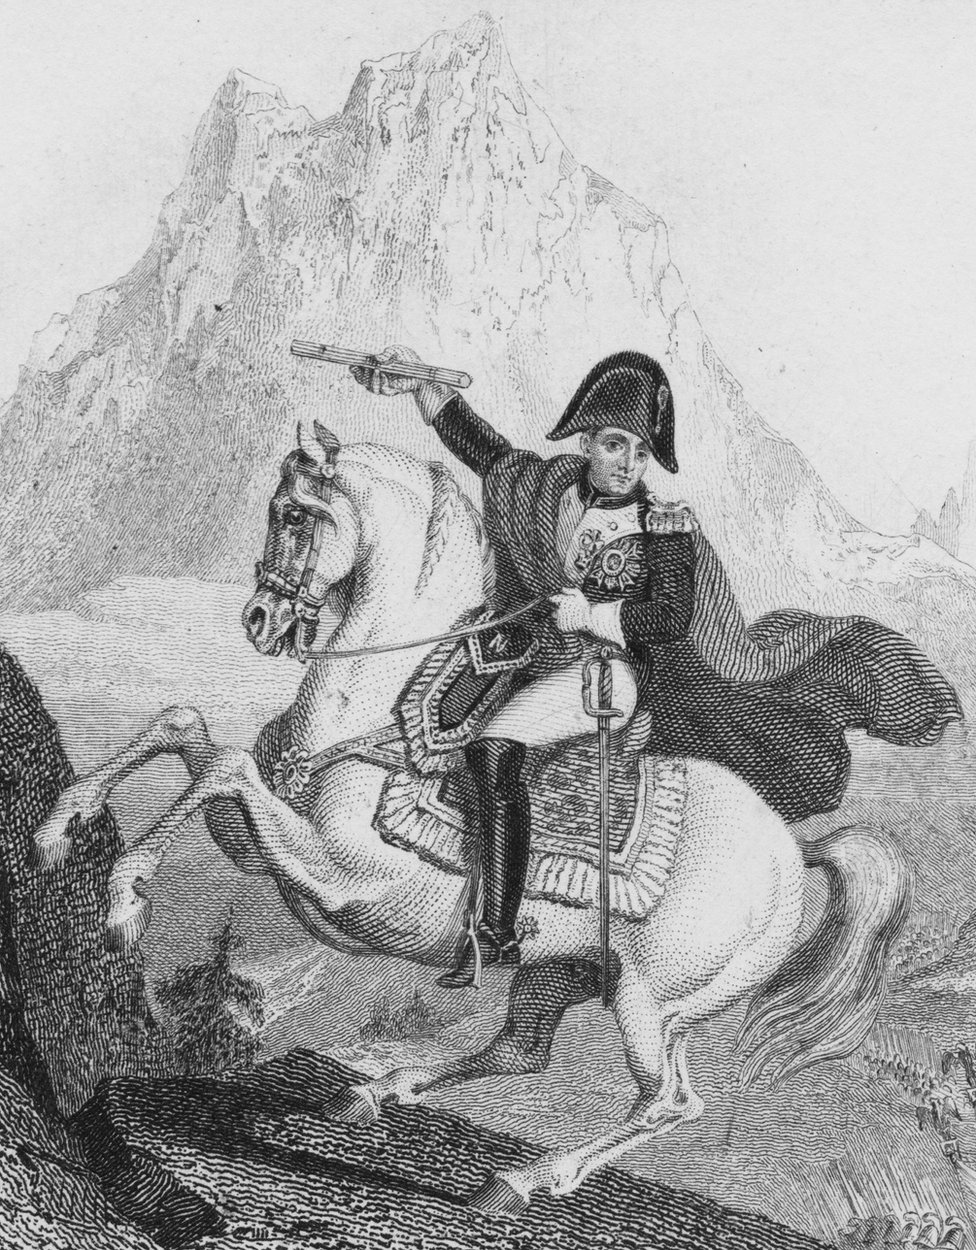 Napoleon crossing through the Alps into Italy on 20 May 1800 from Valais, Switzerland